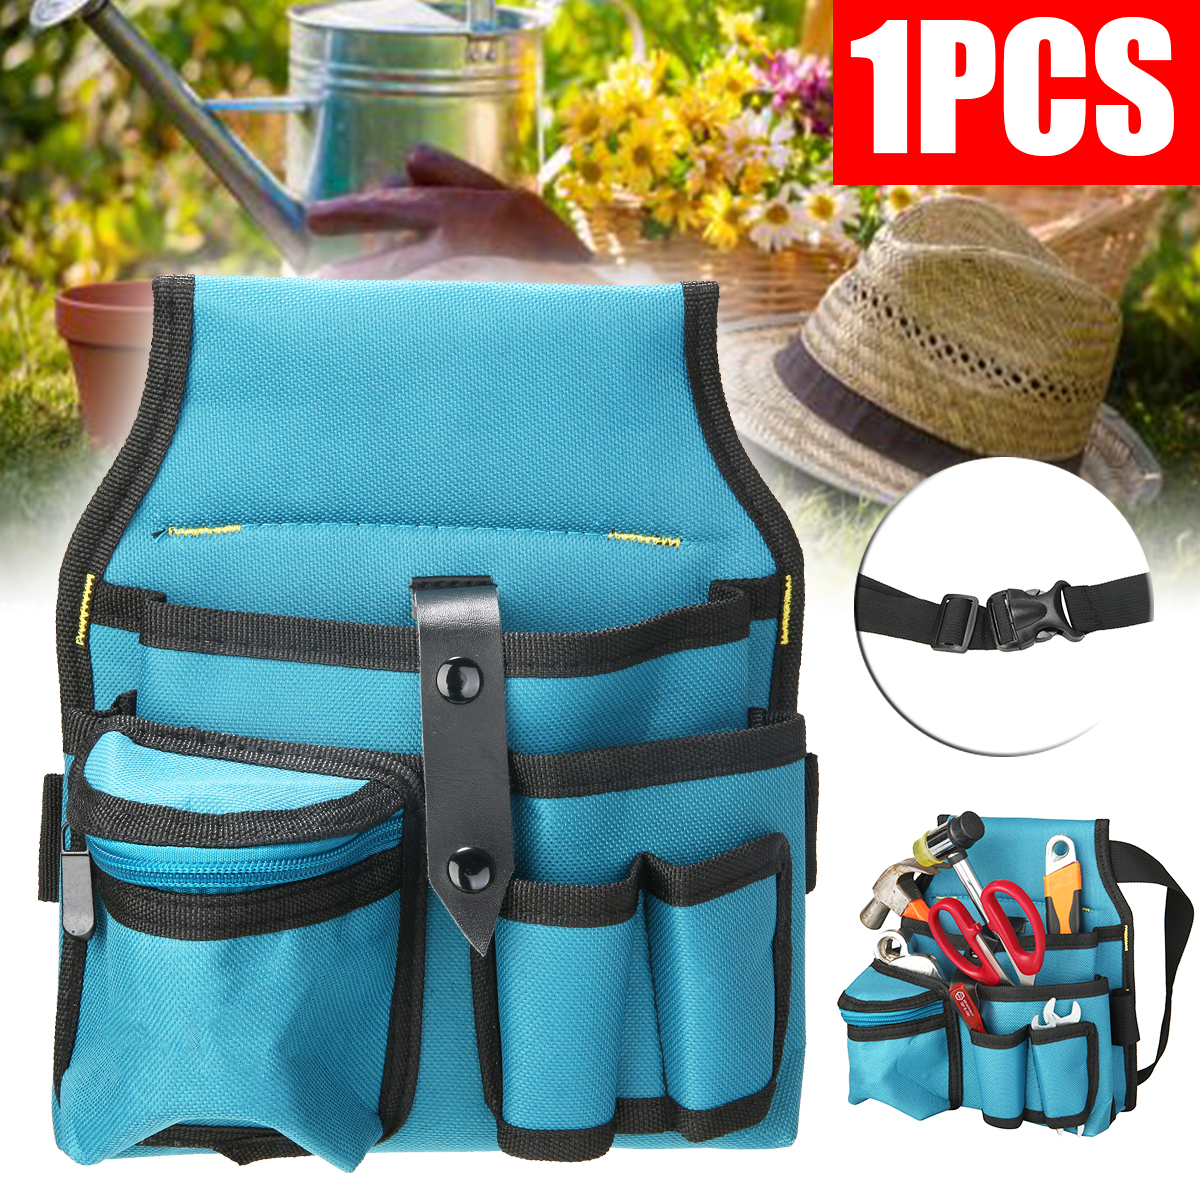 Oxford Tool Bag Belt Waist Pocket Bags Outdoor Waterproof Working Tool Storage Bags Gardening Tool